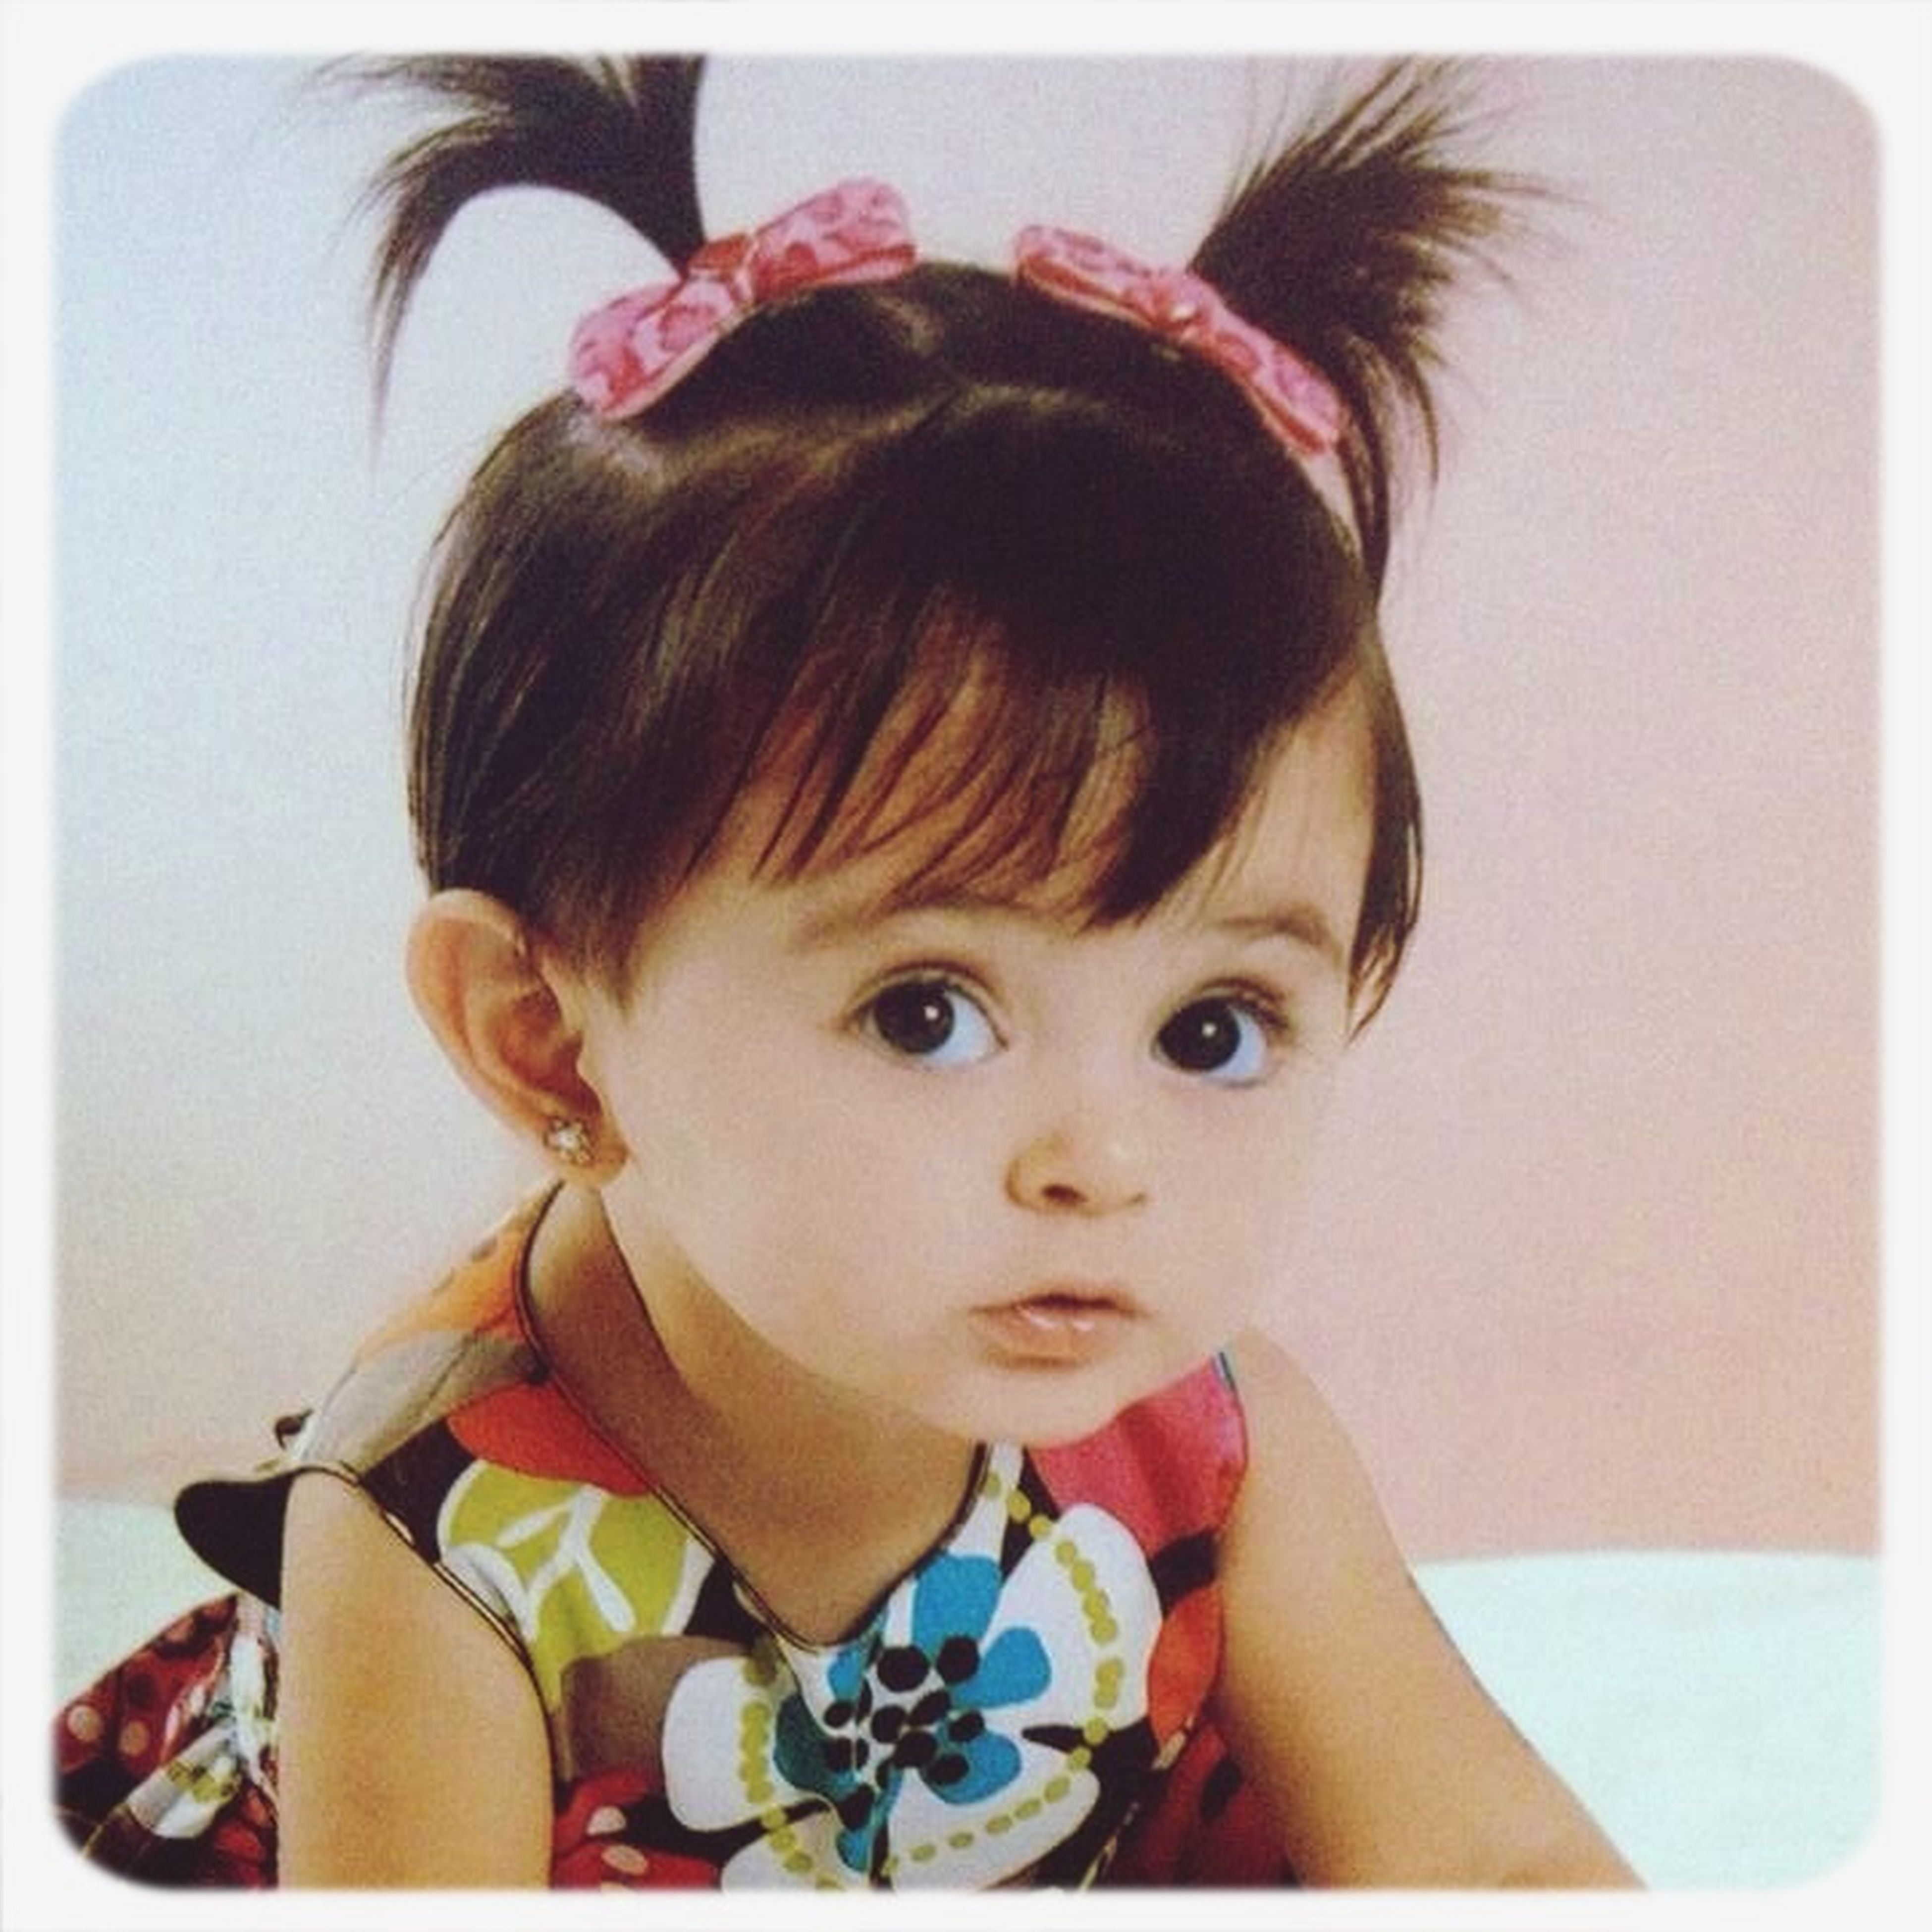 childhood, cute, elementary age, innocence, person, indoors, girls, transfer print, looking at camera, headshot, portrait, boys, lifestyles, leisure activity, front view, auto post production filter, close-up, babyhood